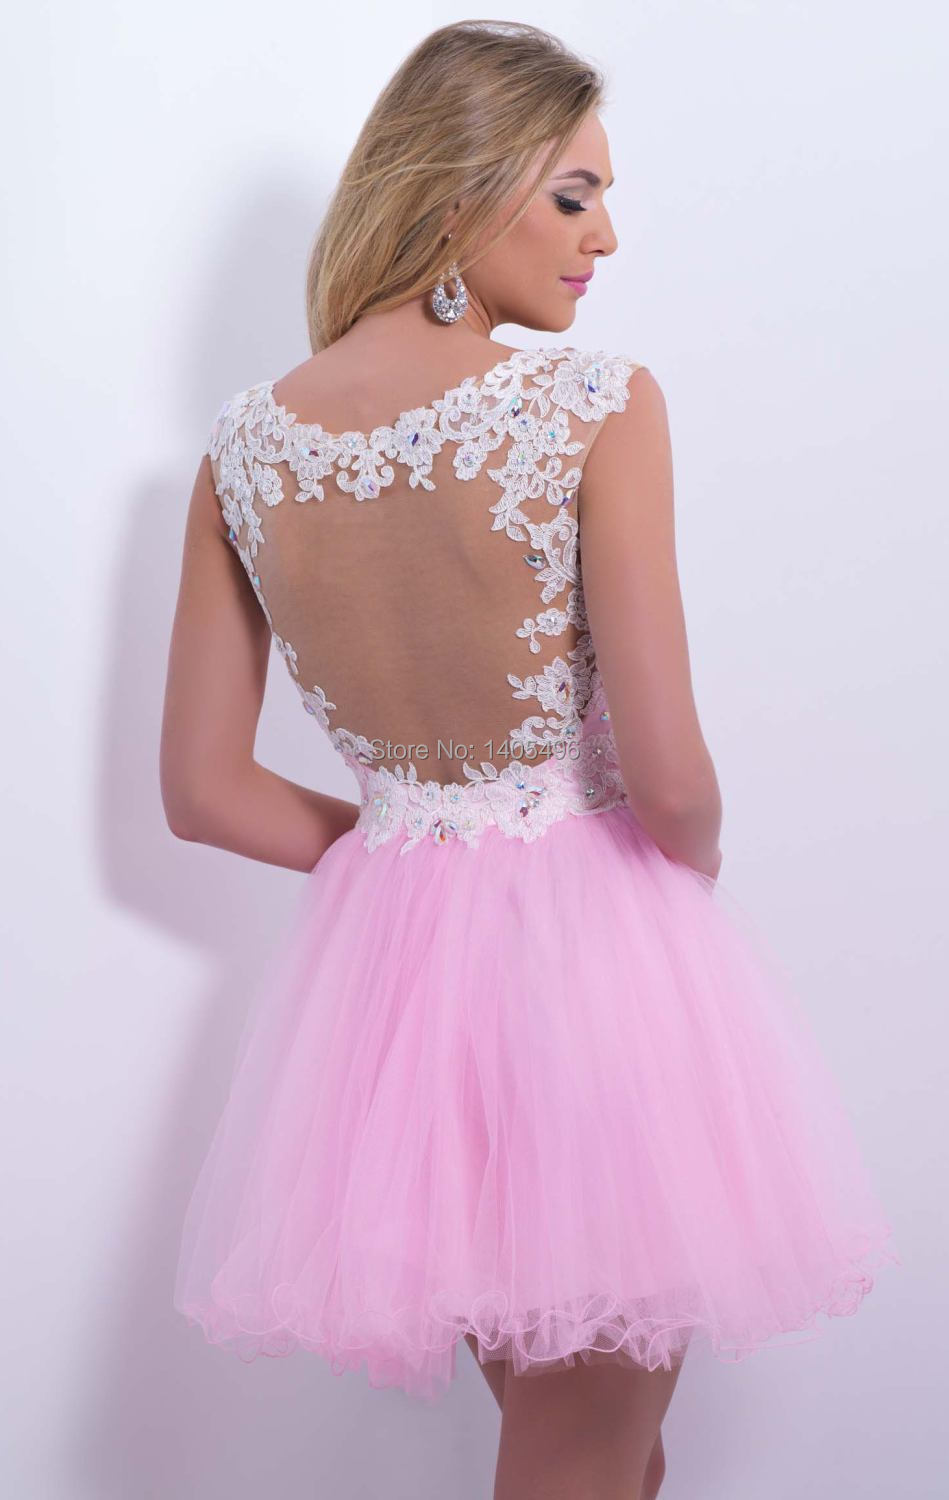 2014 Pink Short Homecoming Dresses Sheer Strap Vestidos De Fiesta ...